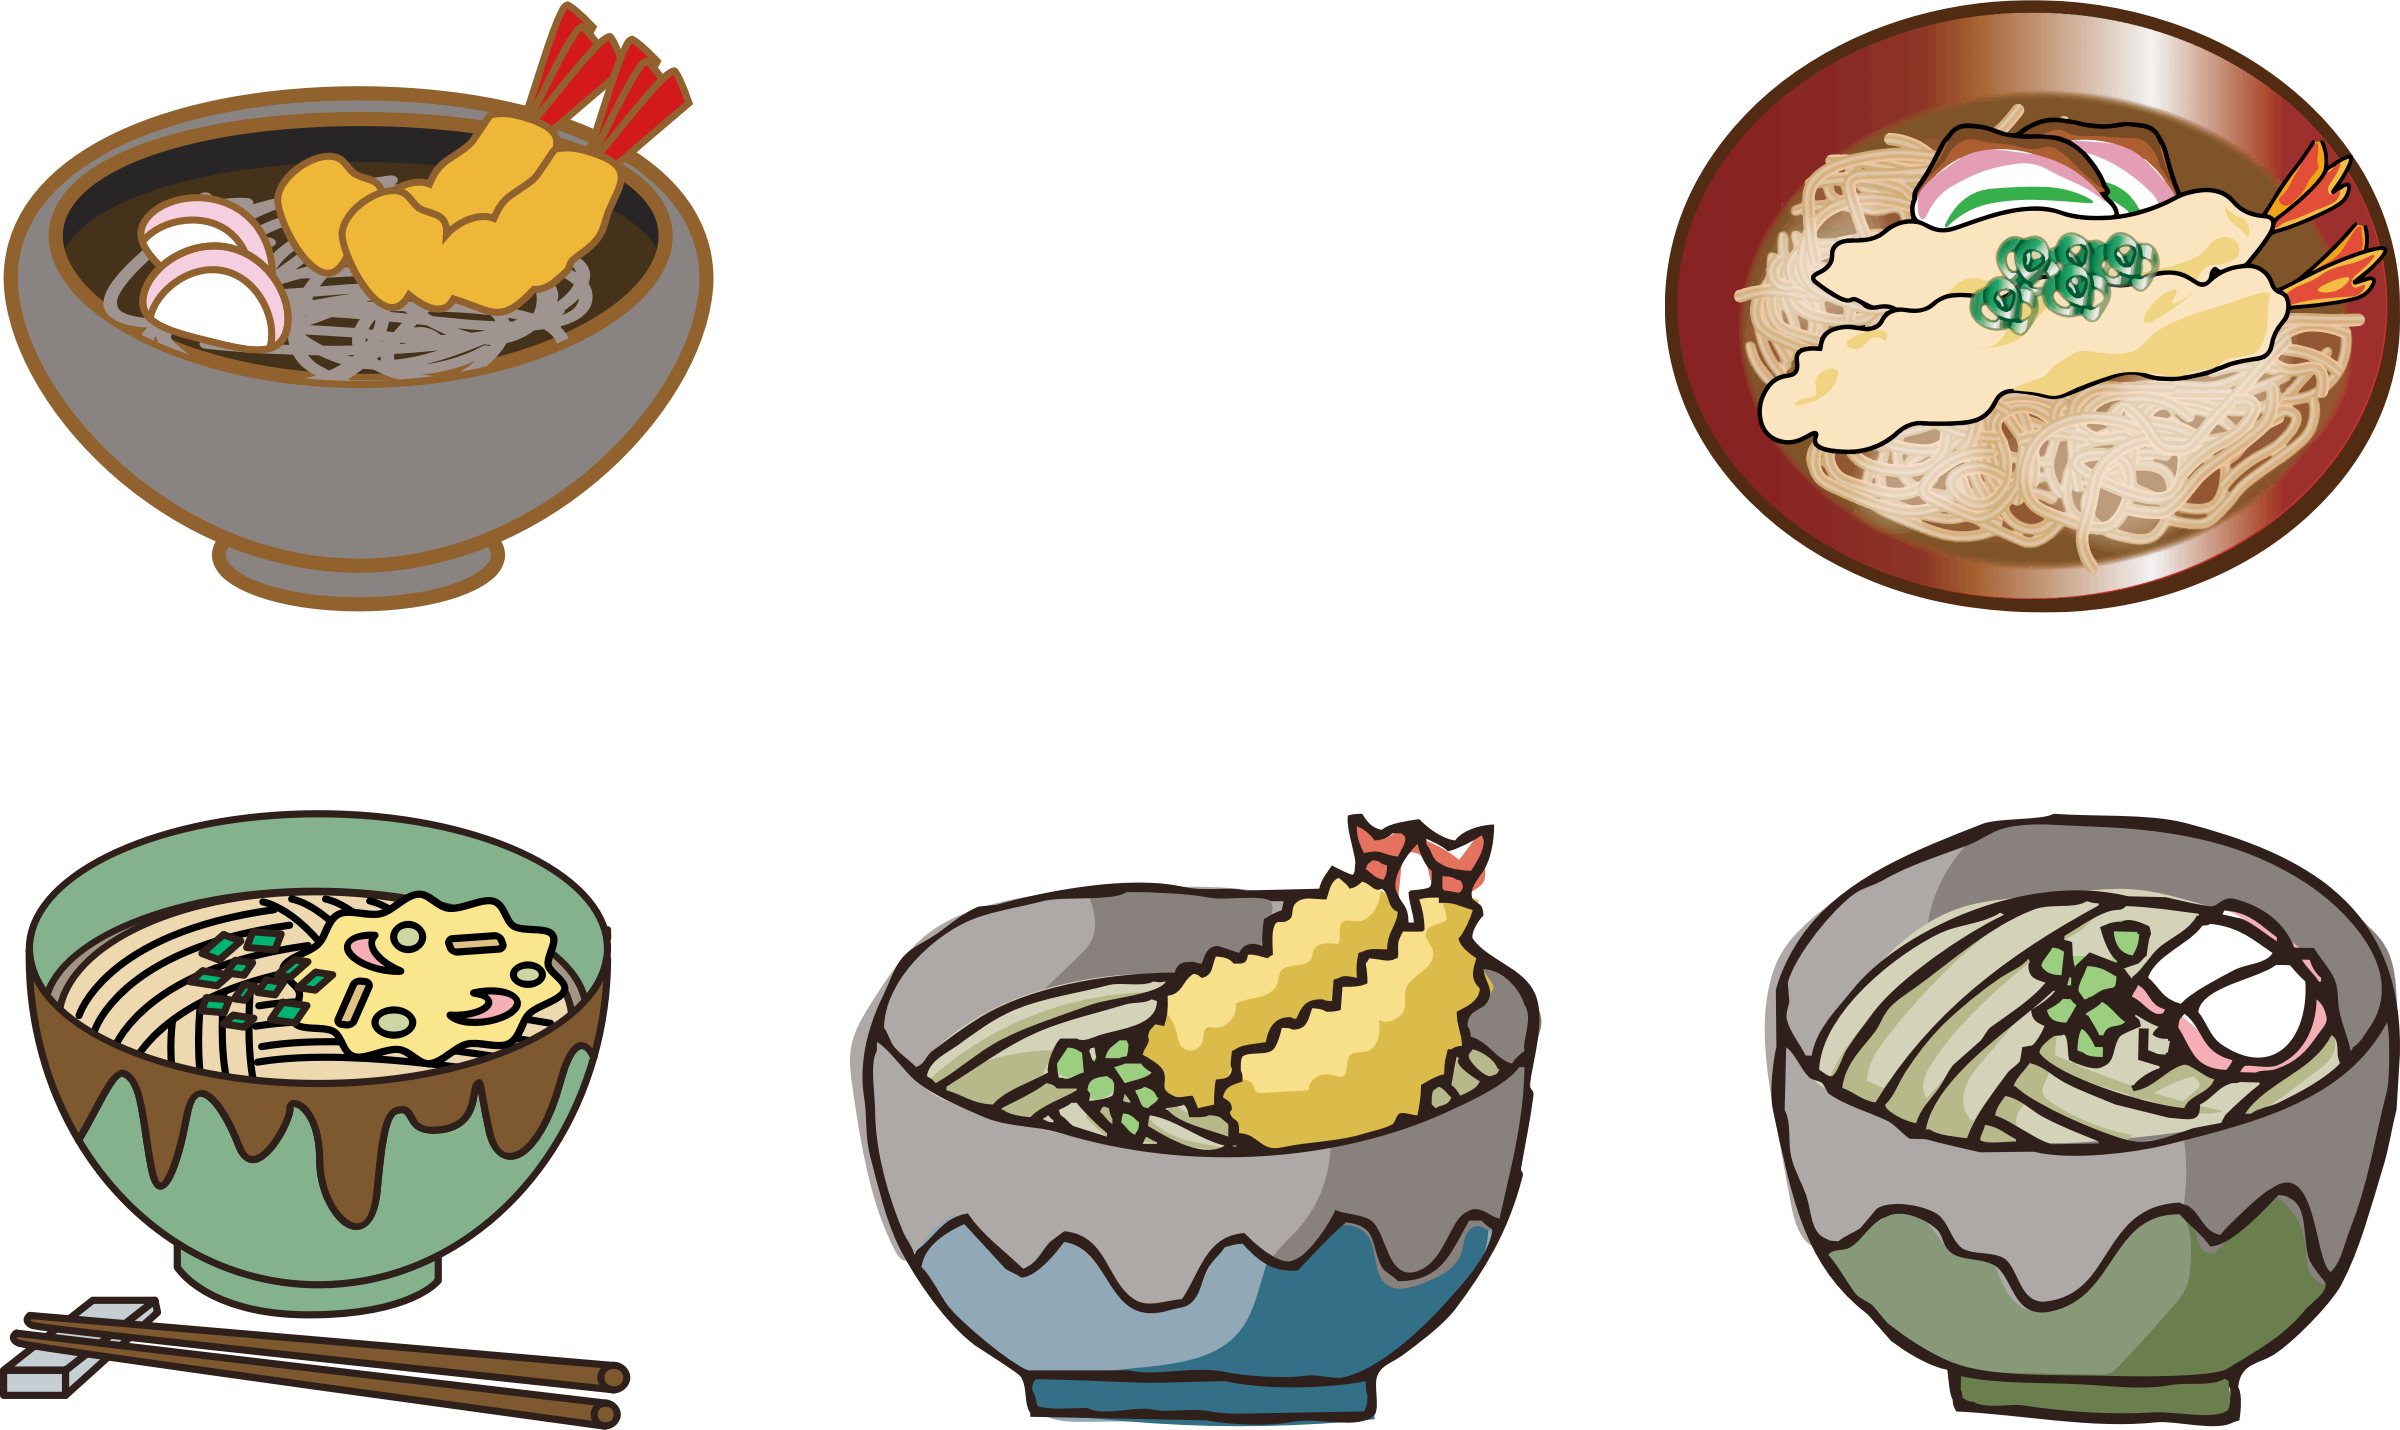 Noodles clipart illustration. Soba icons png free